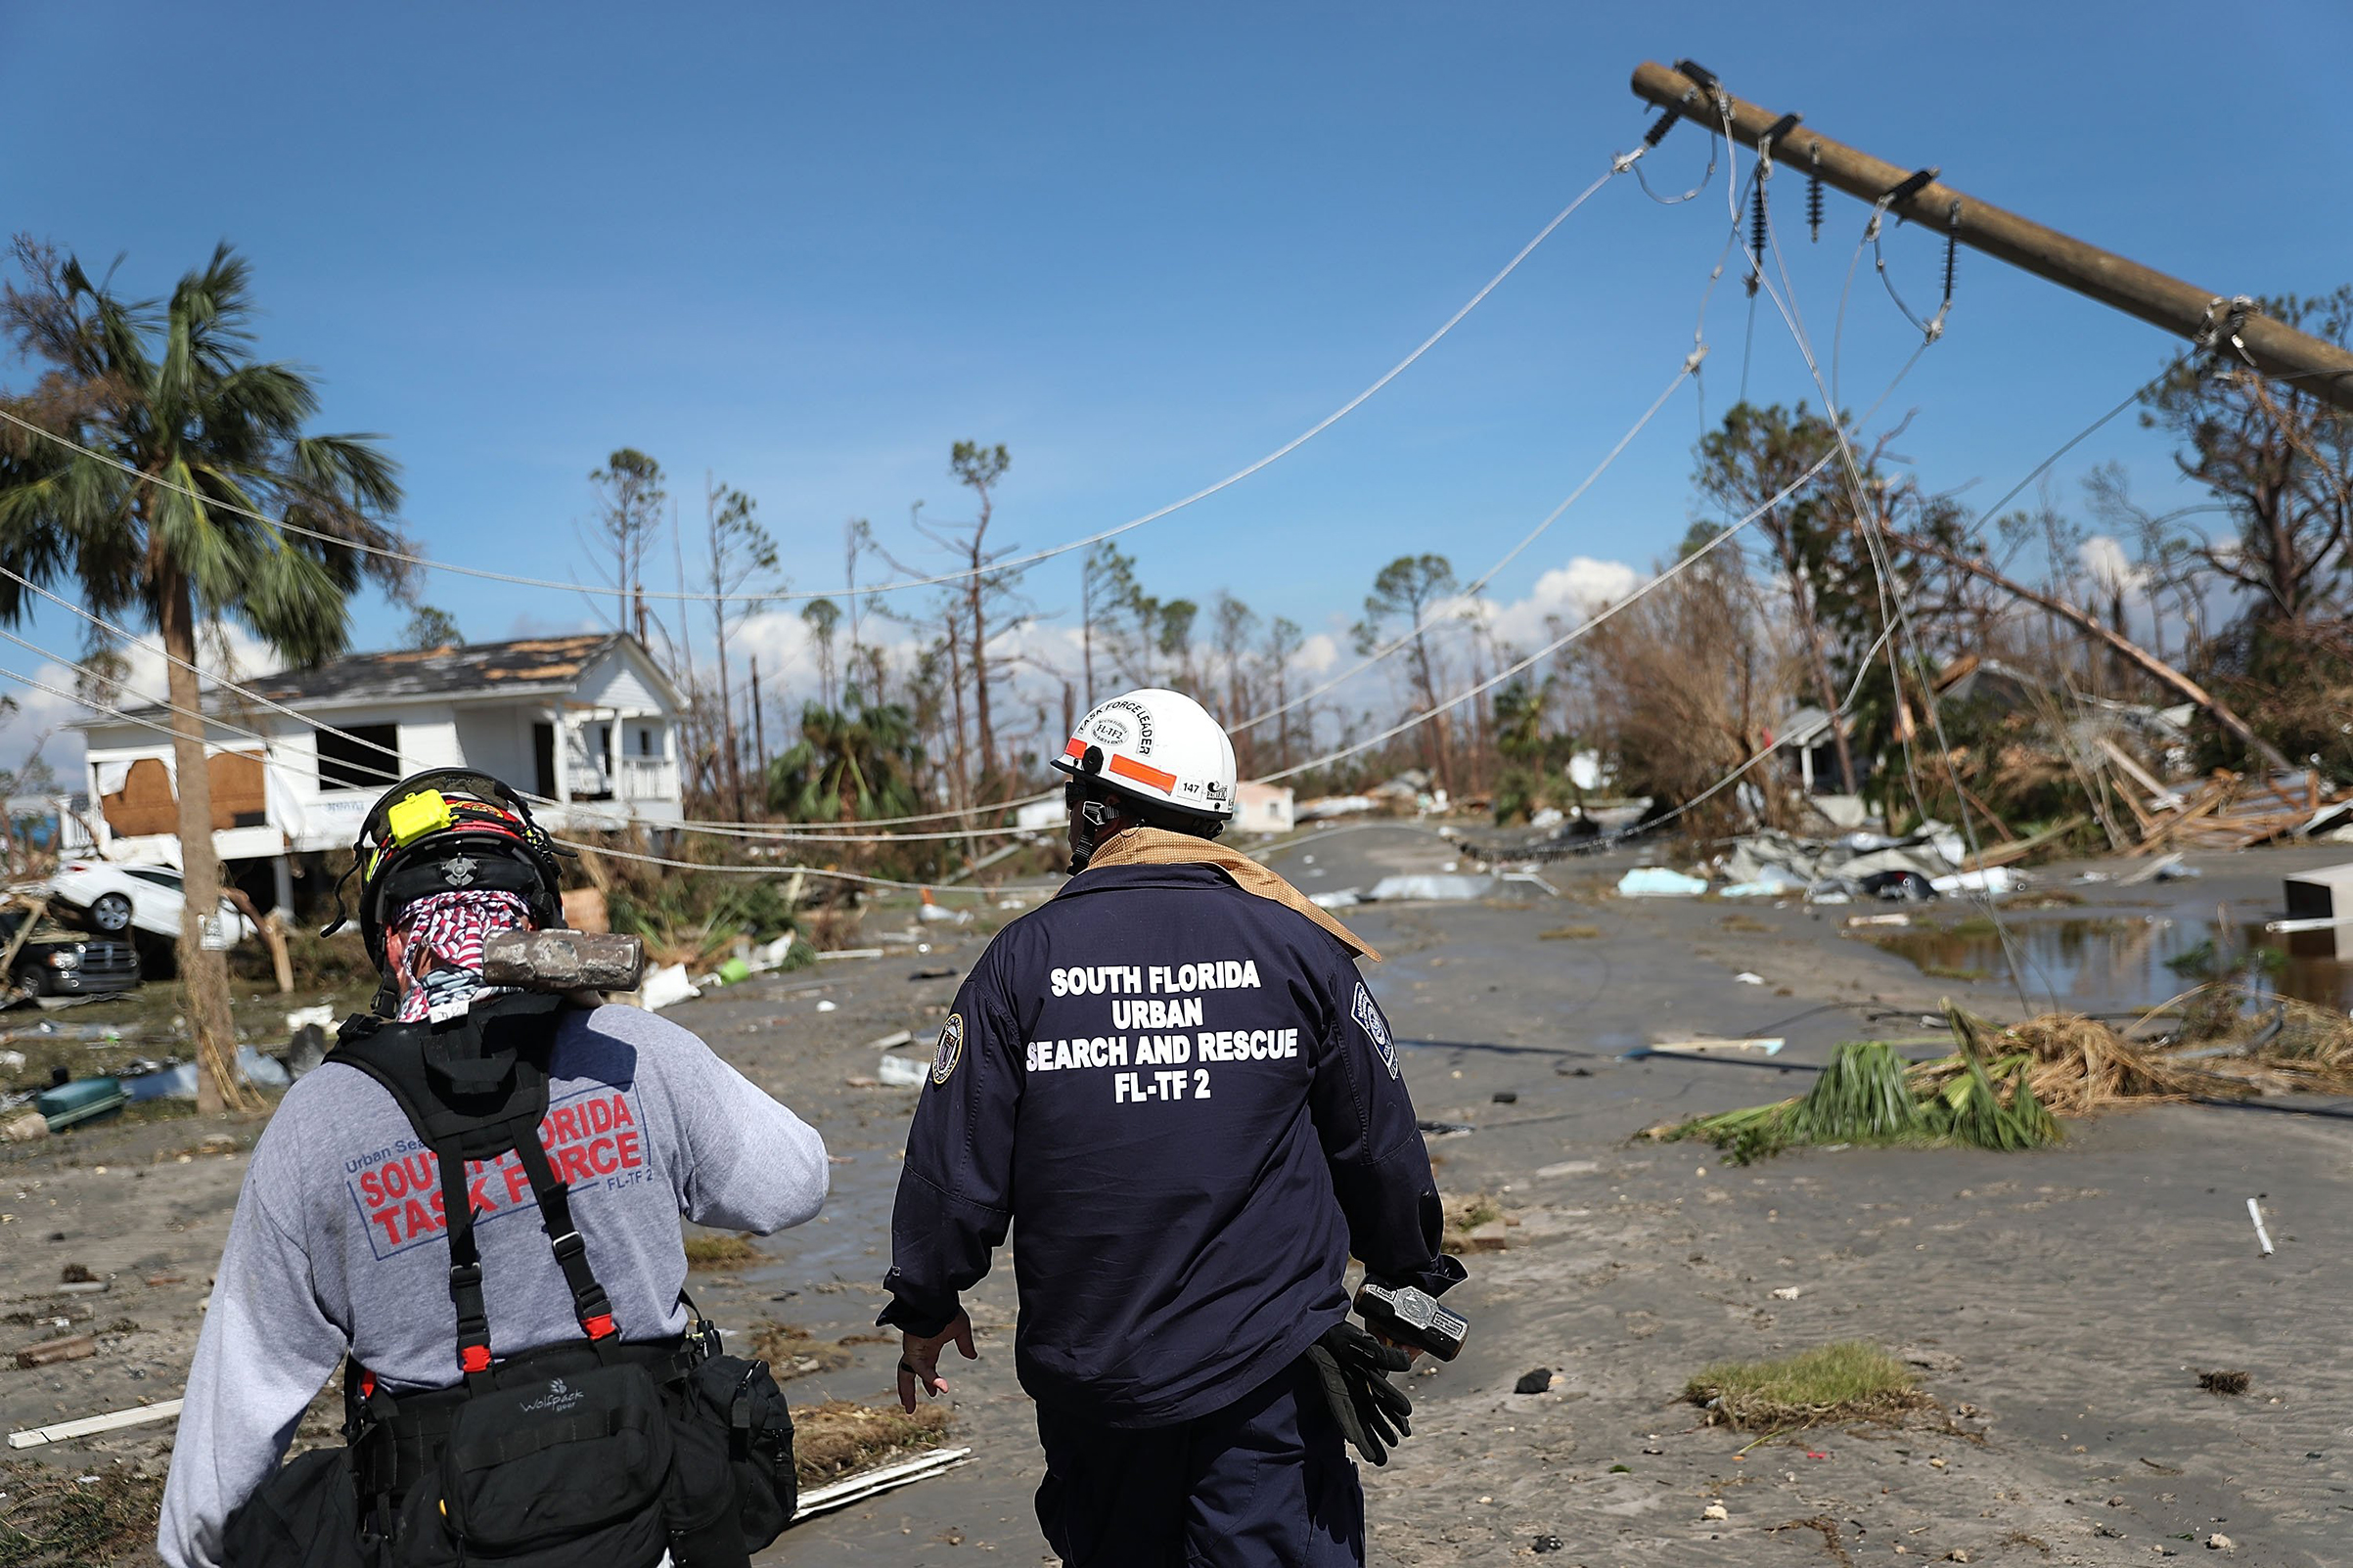 Members of the South Florida Search and Rescue team search for survivors in the destruction left after Hurricane Michael passed through the area on Oct. 11, 2018 in Mexico Beach, Fla.